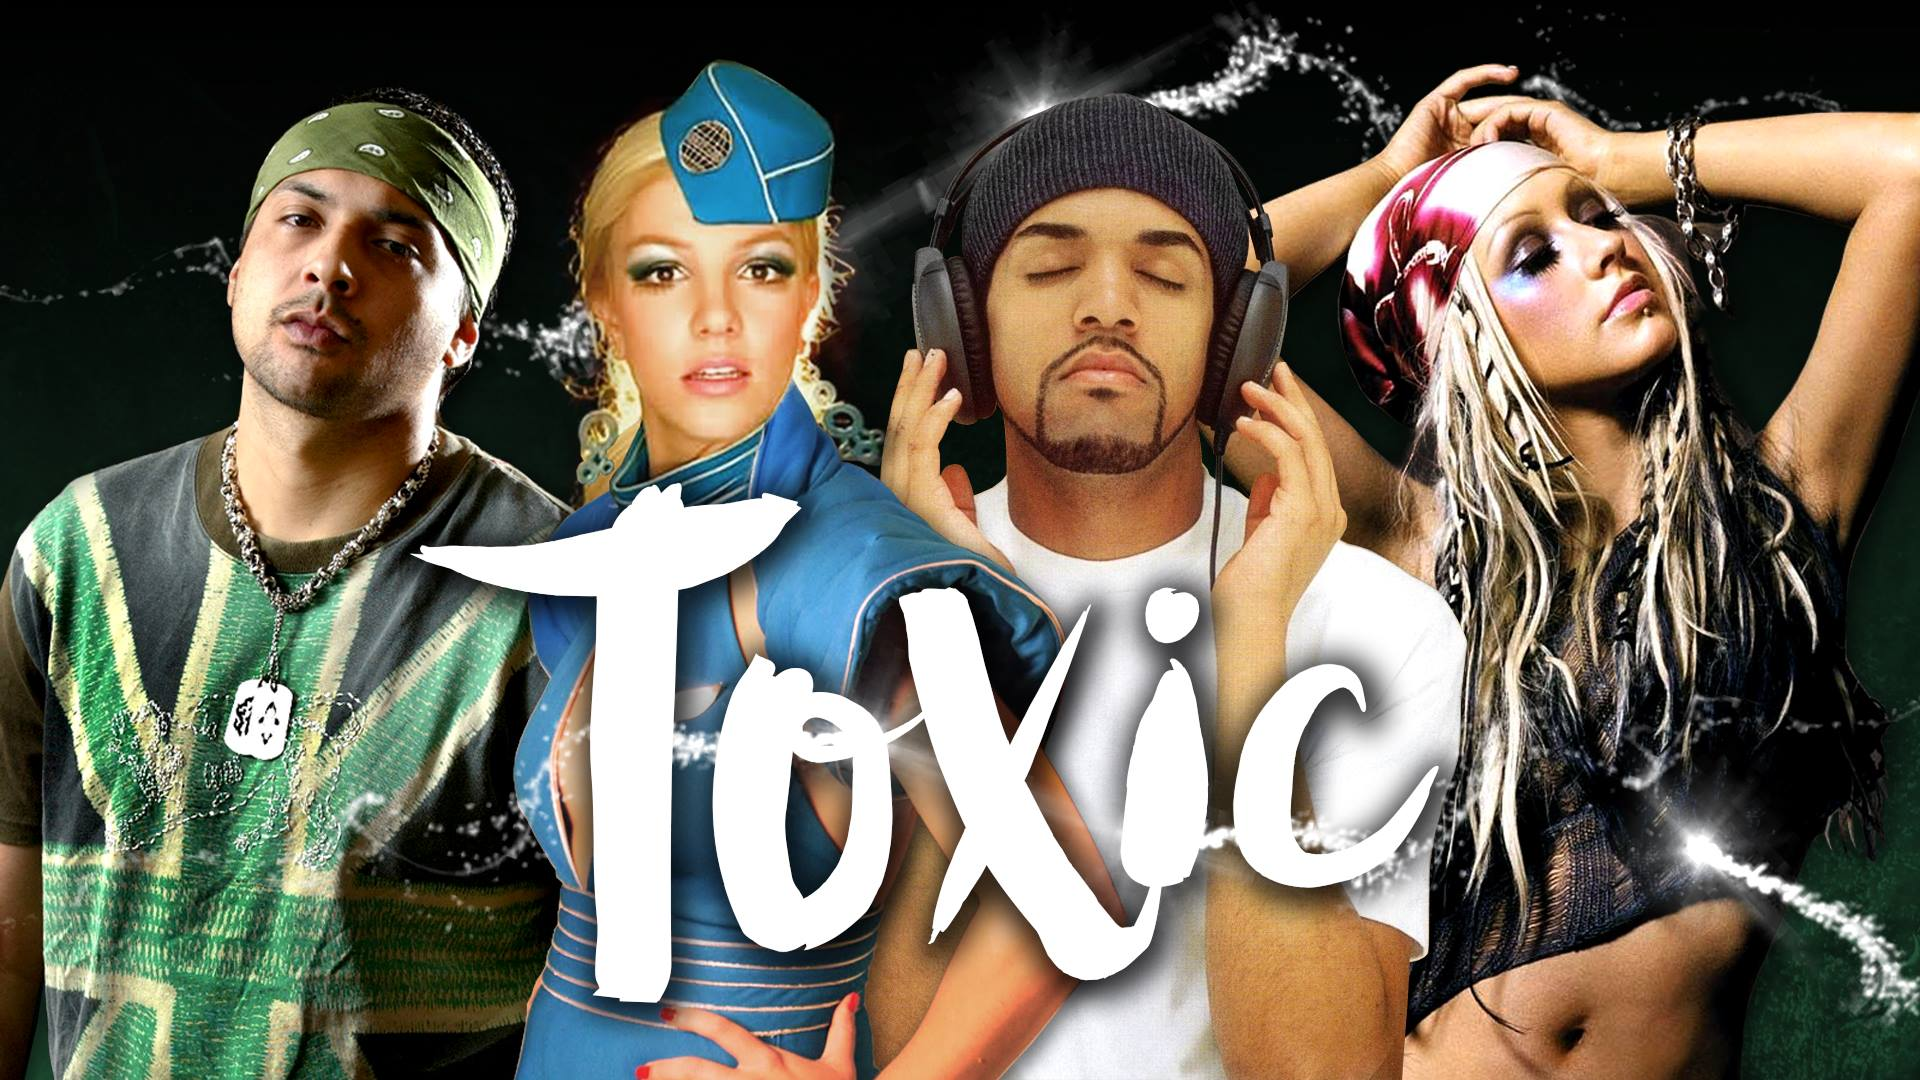 The tribe has spoken... It's time to get Noughtie!   Let's rewind it back to the golden era of early 00's! Expect to hear the biggest hits such as :  Justin Timberlake - Rock Your Body  Britney Spears - Toxic  Outkast - So Fresh So Clean  Shakira- Hips Don't Lie  Craig David - ALL OF HIS SONGS  Destiny's Child - Say My Name  P!nk - Just Like A Pill  Eminem - Without Me  Sisqo - Thong Song  Craig David - ALL OF HIS SONGS  Missy Elliot - Work It  Christina Aguilera - Dirrty   And many more!  Click 'Going' for £5 cheap list before 11:00pm!